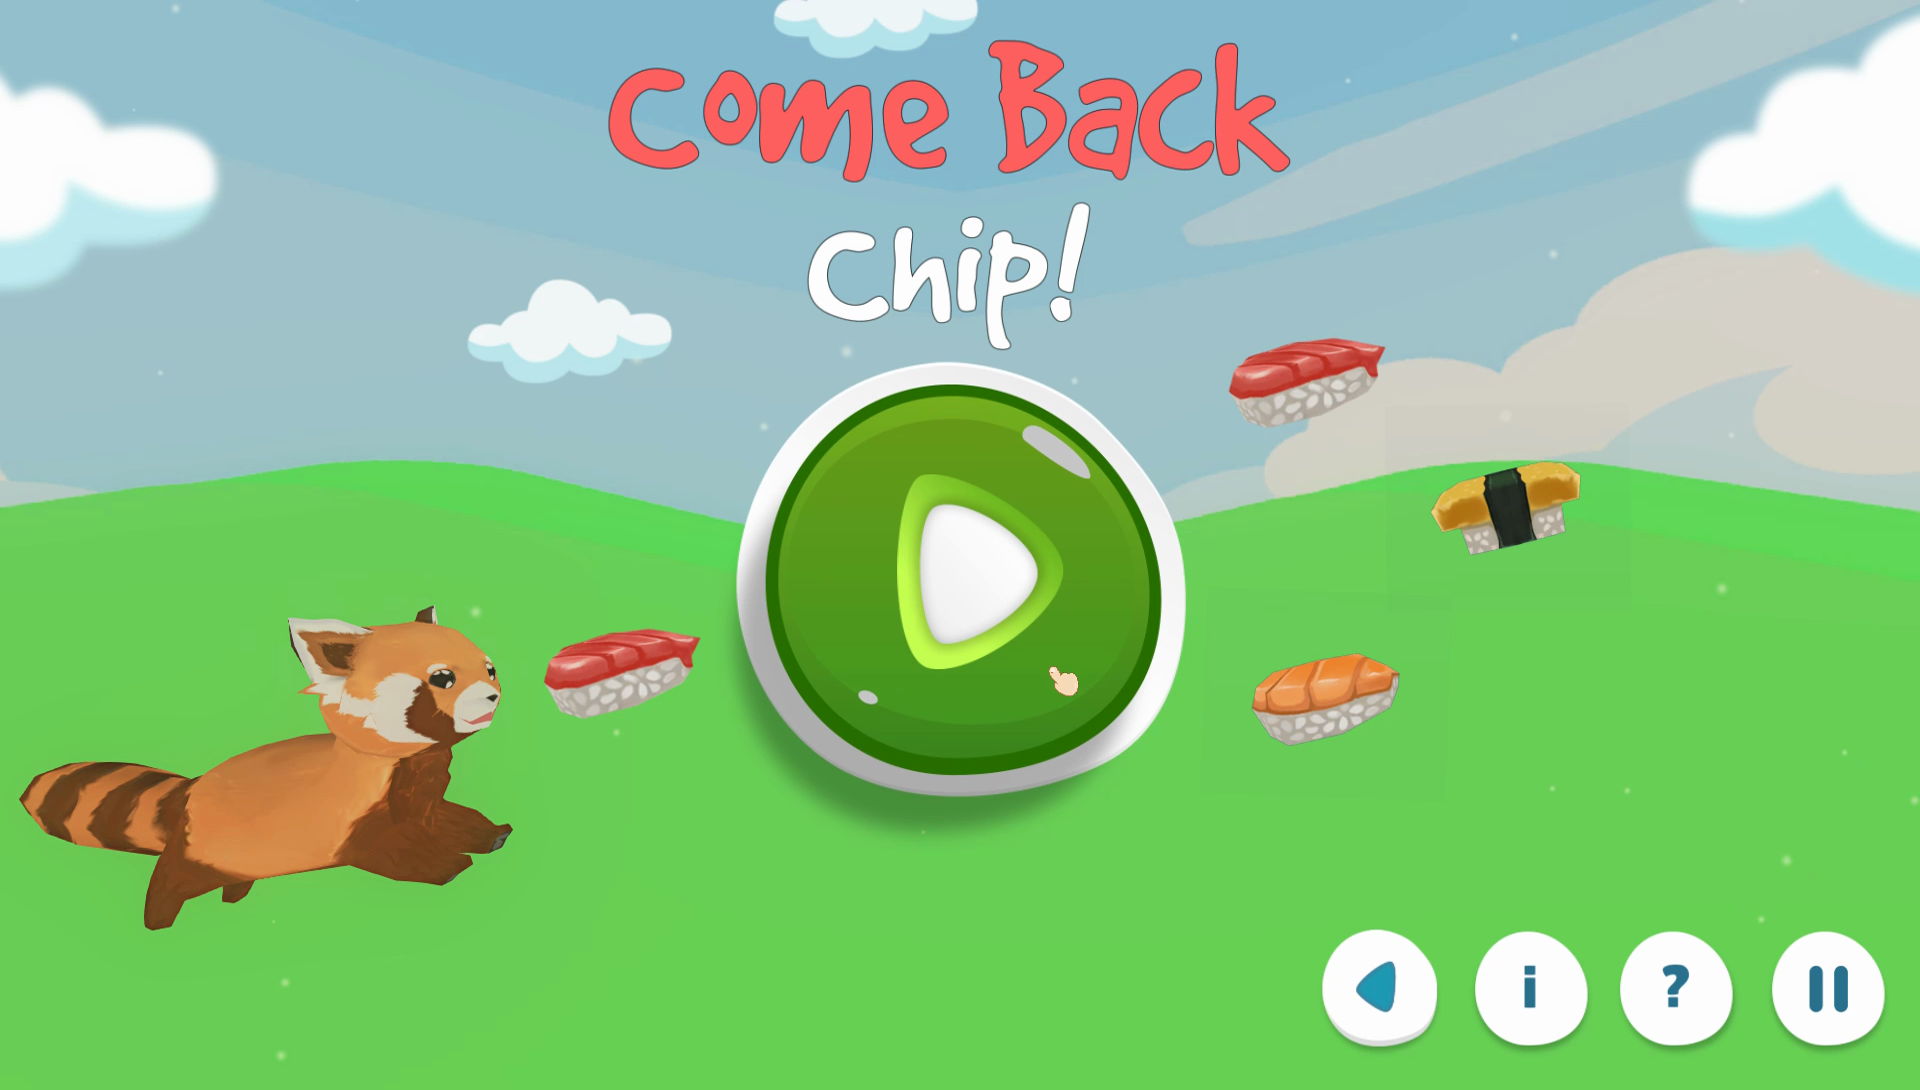 Come Back Chip!